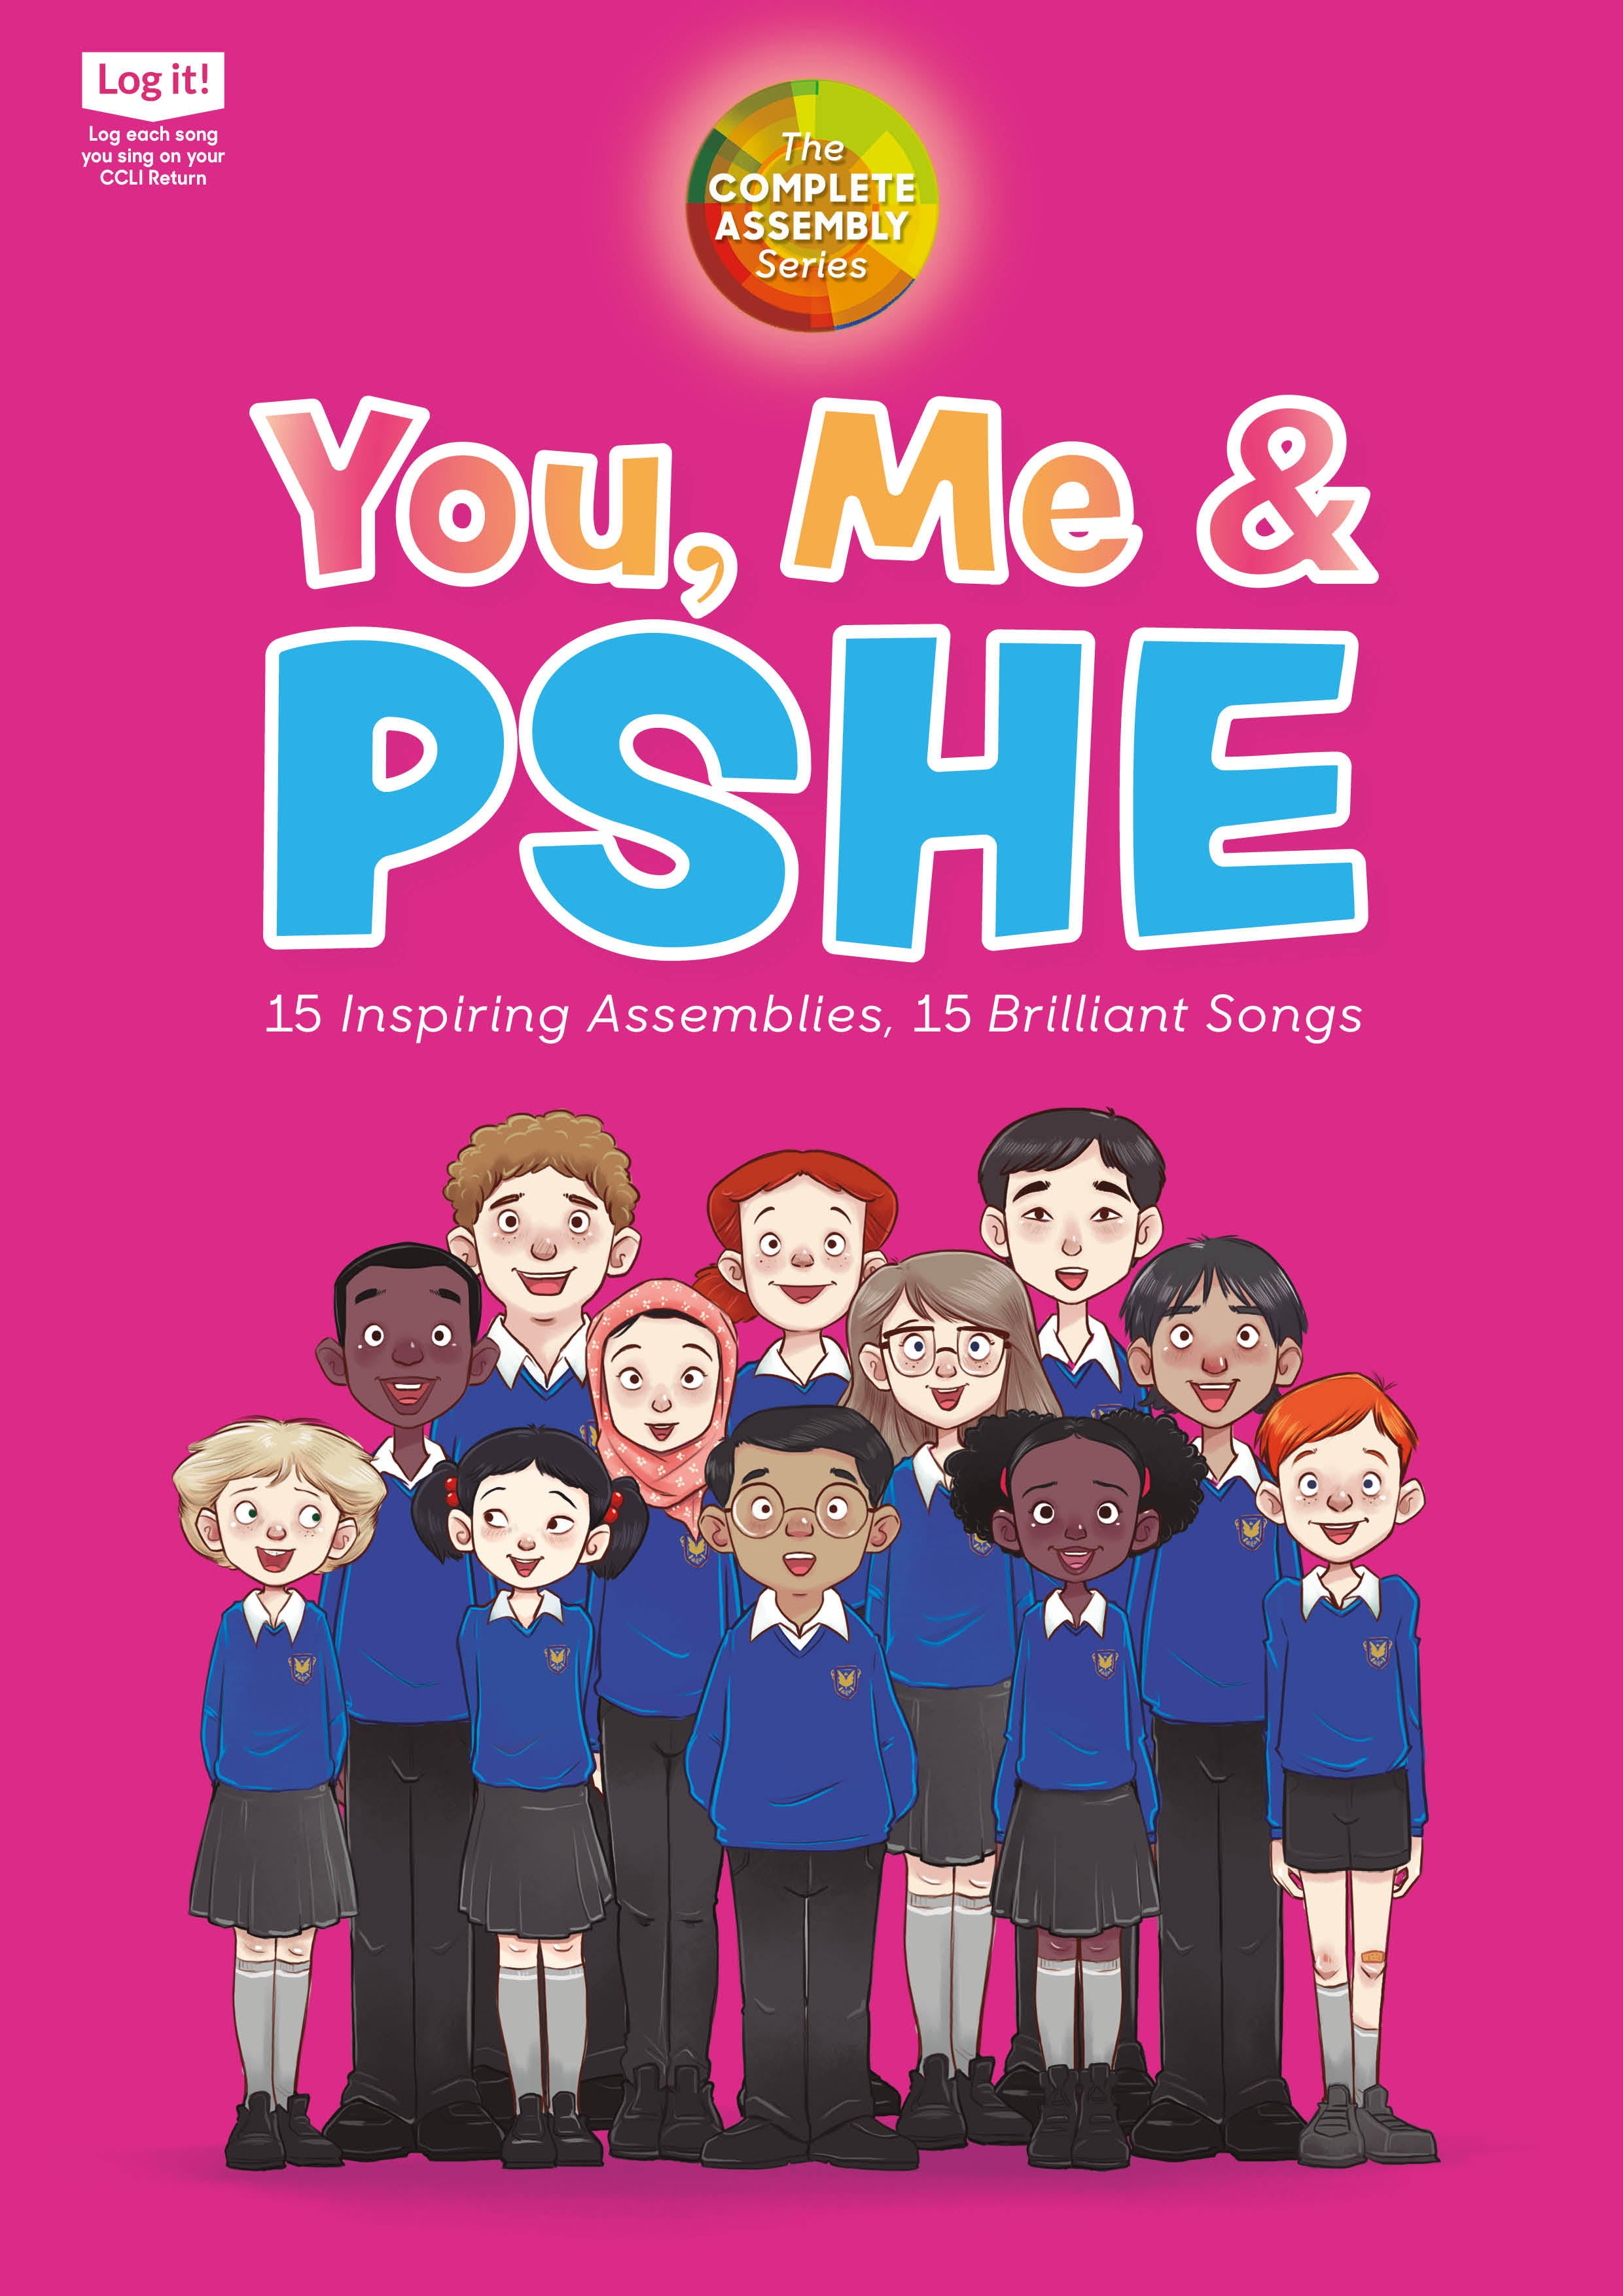 The Complete Assembly Series - You, Me & PSHE